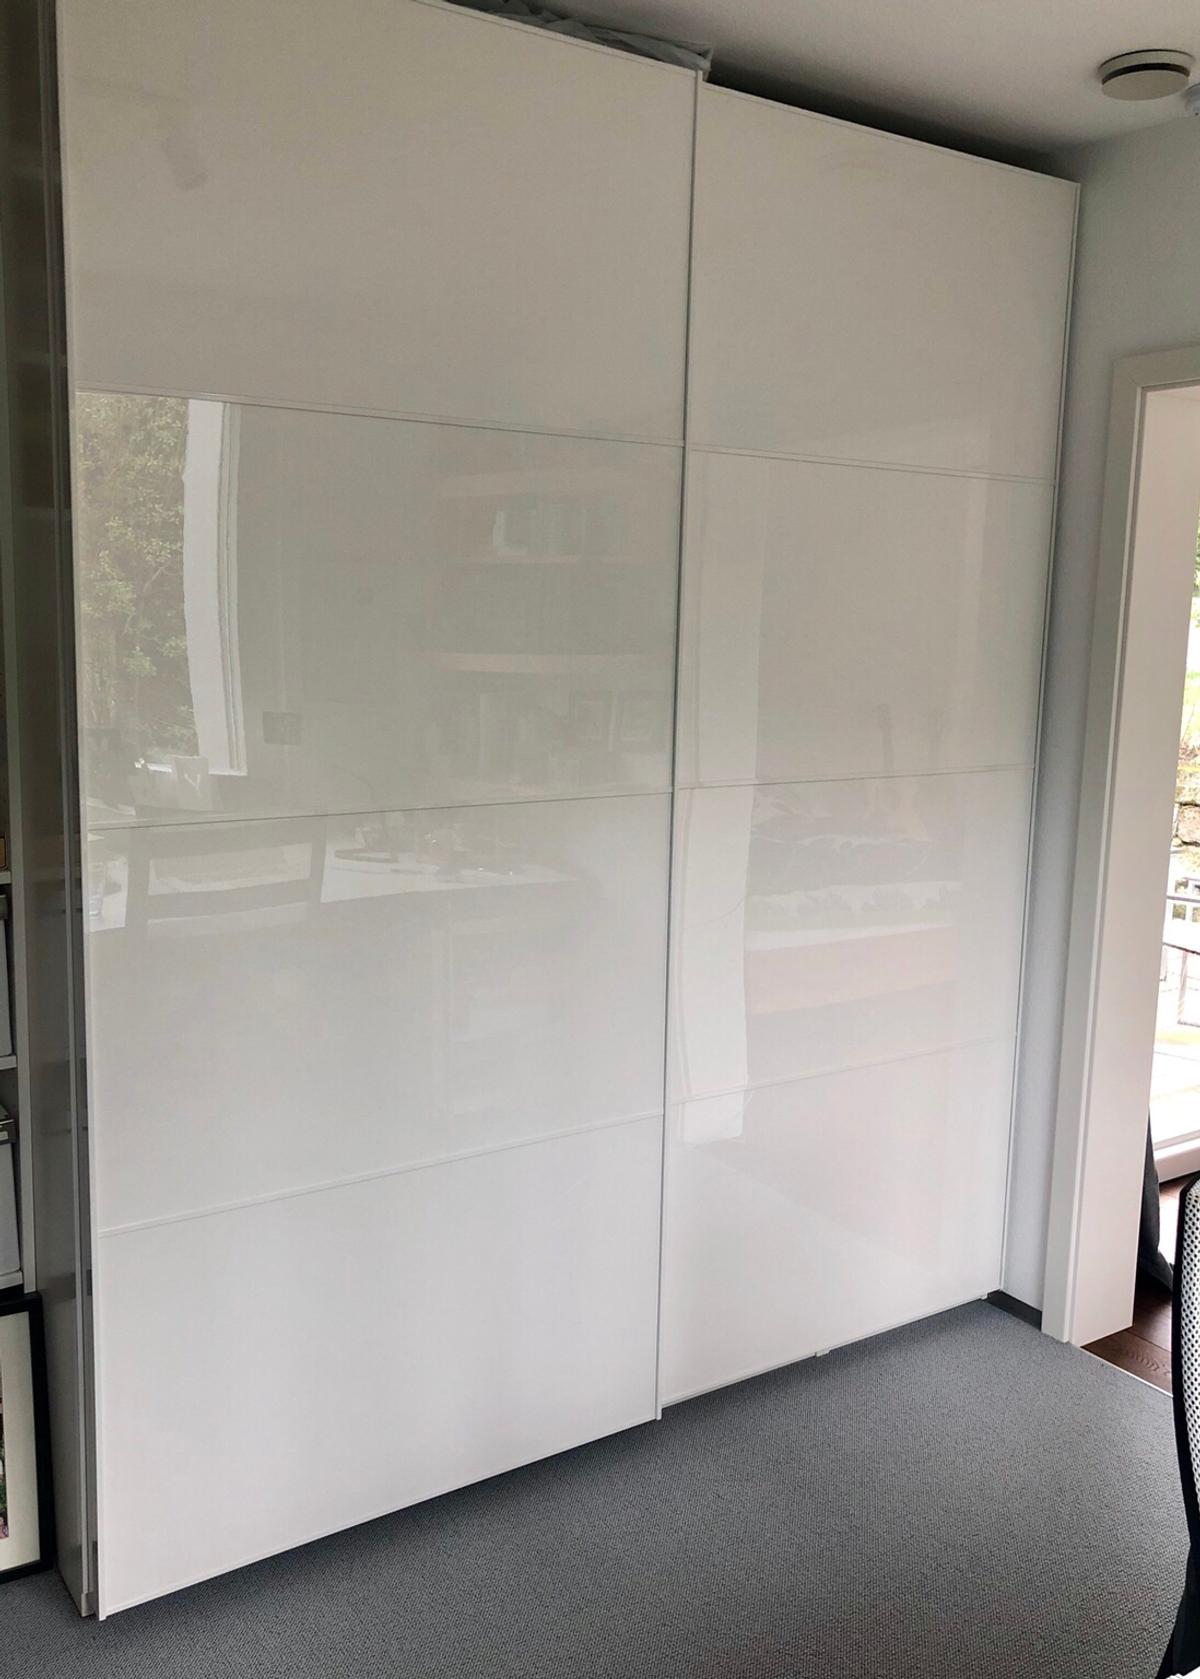 Ikea Pax Schrank Mit Schiebeturen In 72793 Pfullingen For 370 00